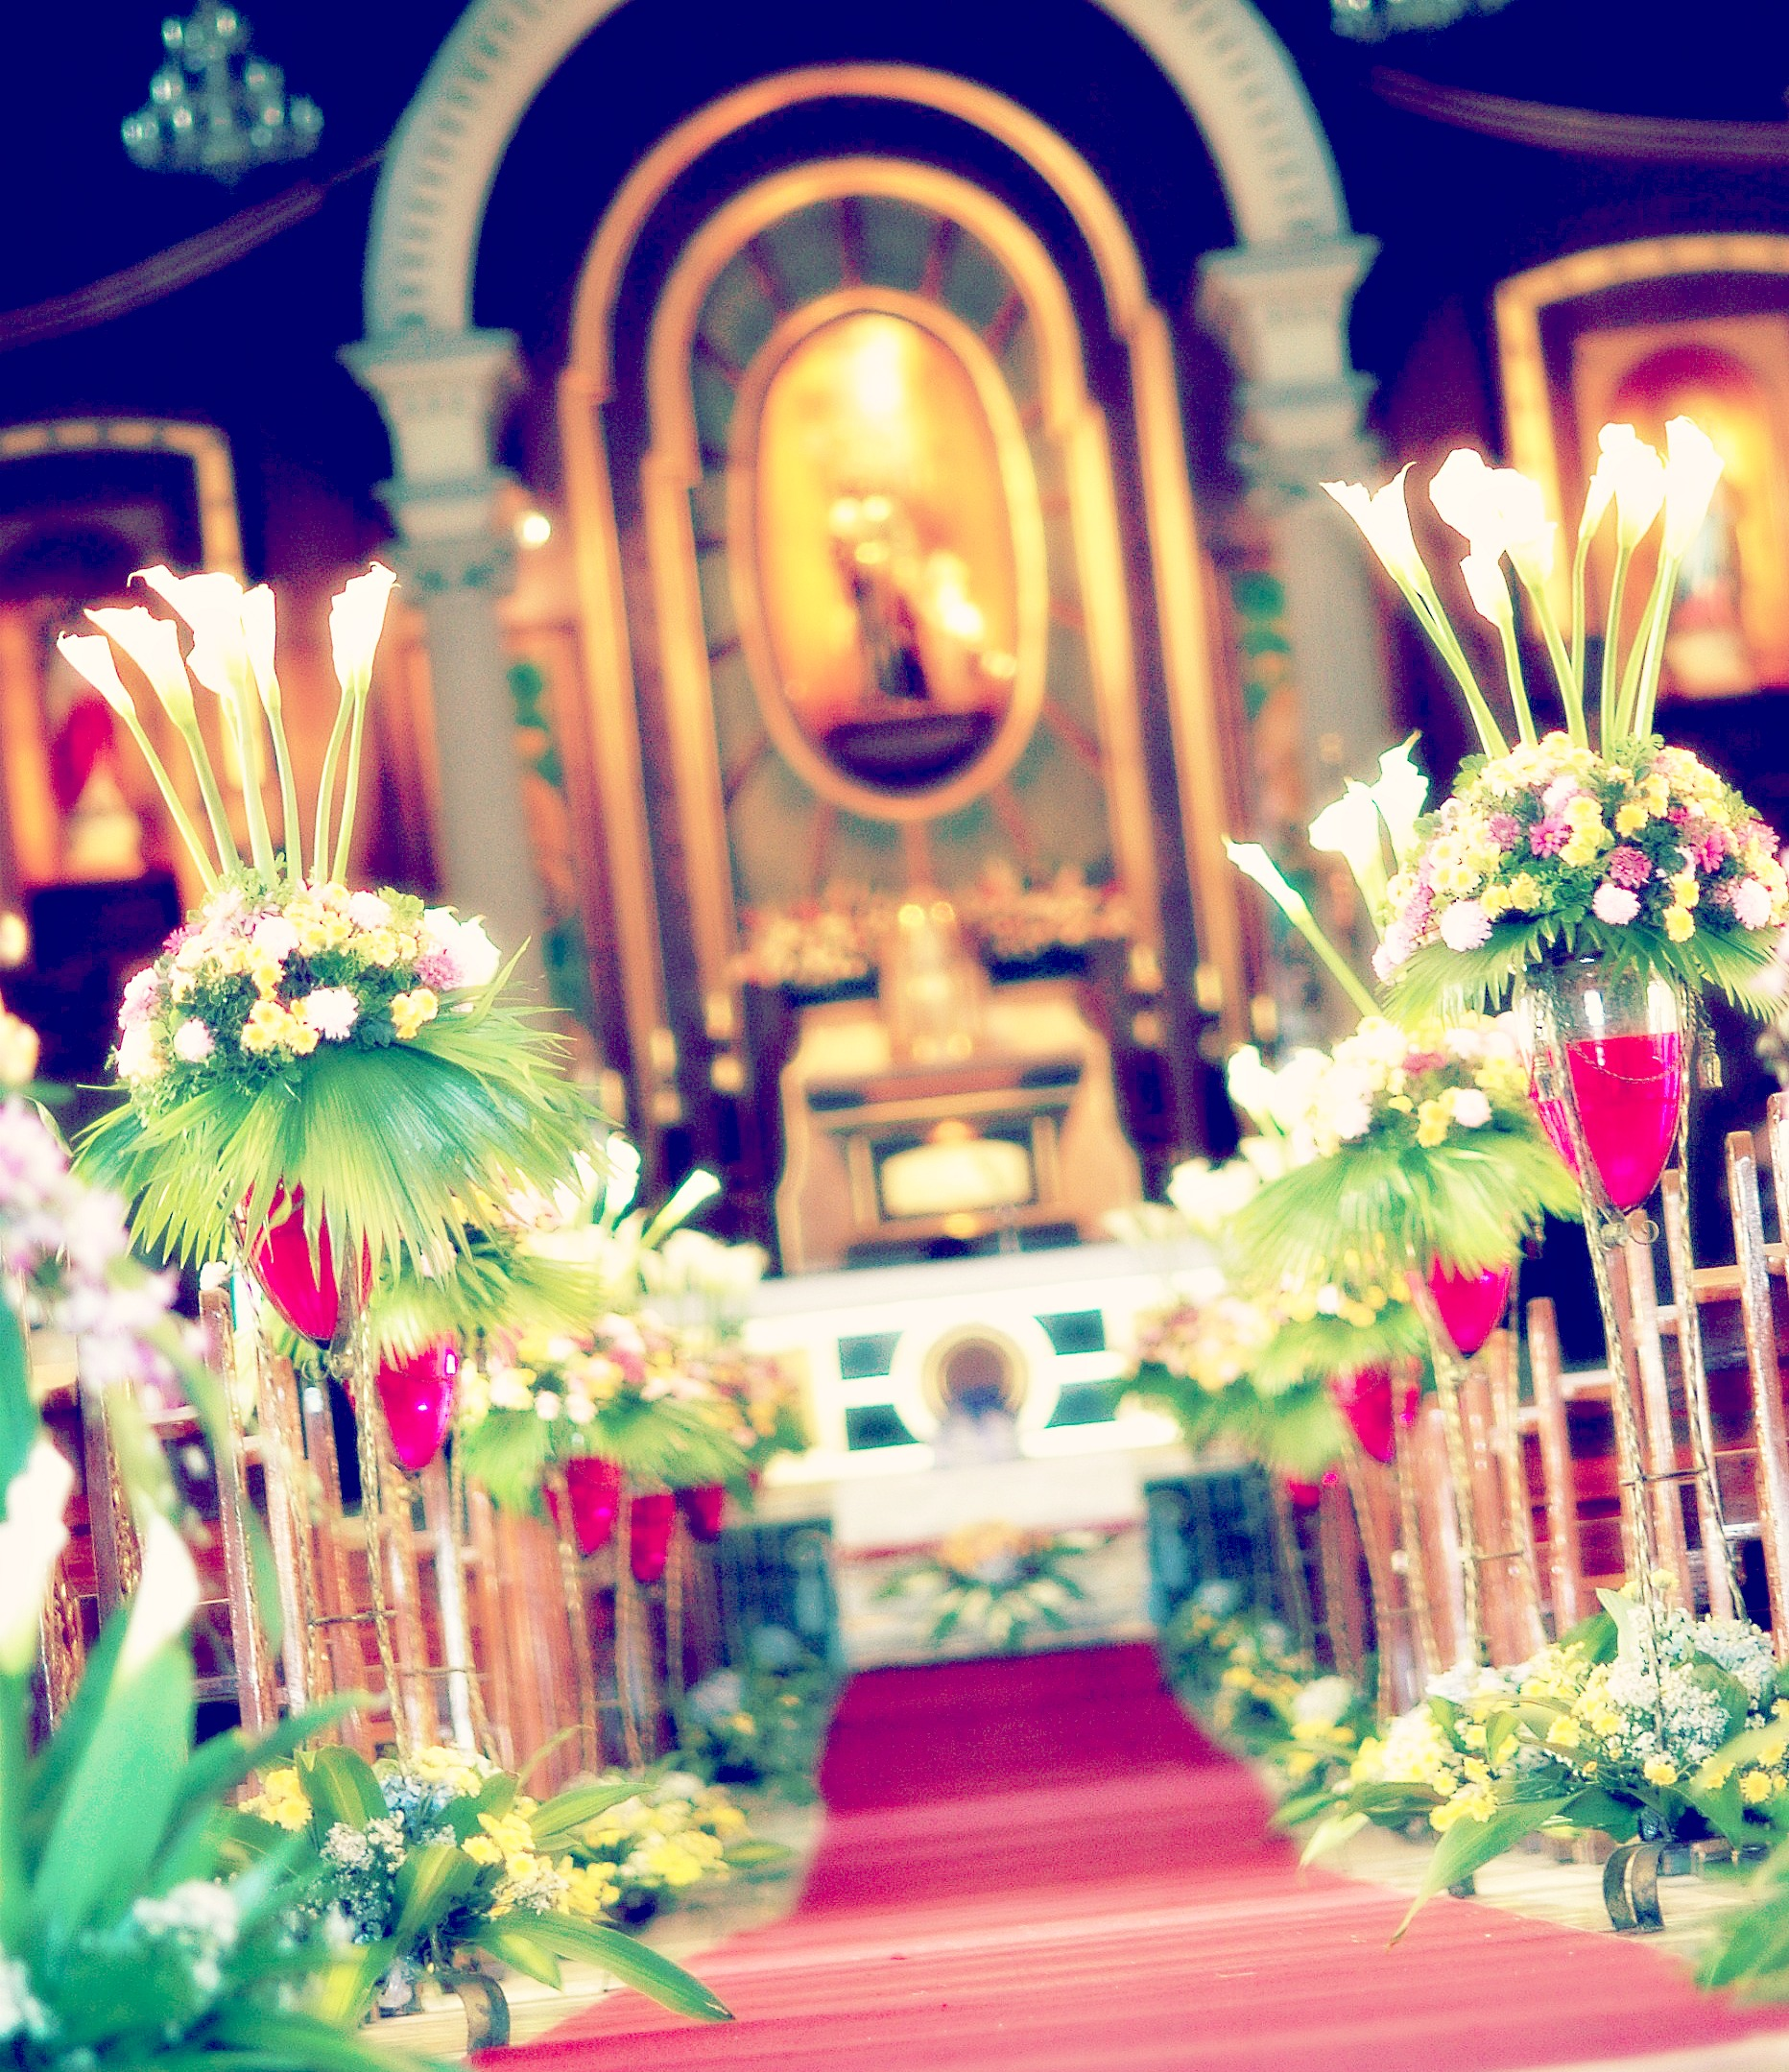 wedding aisle wedding aisle decorations This is the gorgeous looong aisle that I walked during my wedding day This is the beautiful vintage church of The National Shrine of St Joseph in Mandaue